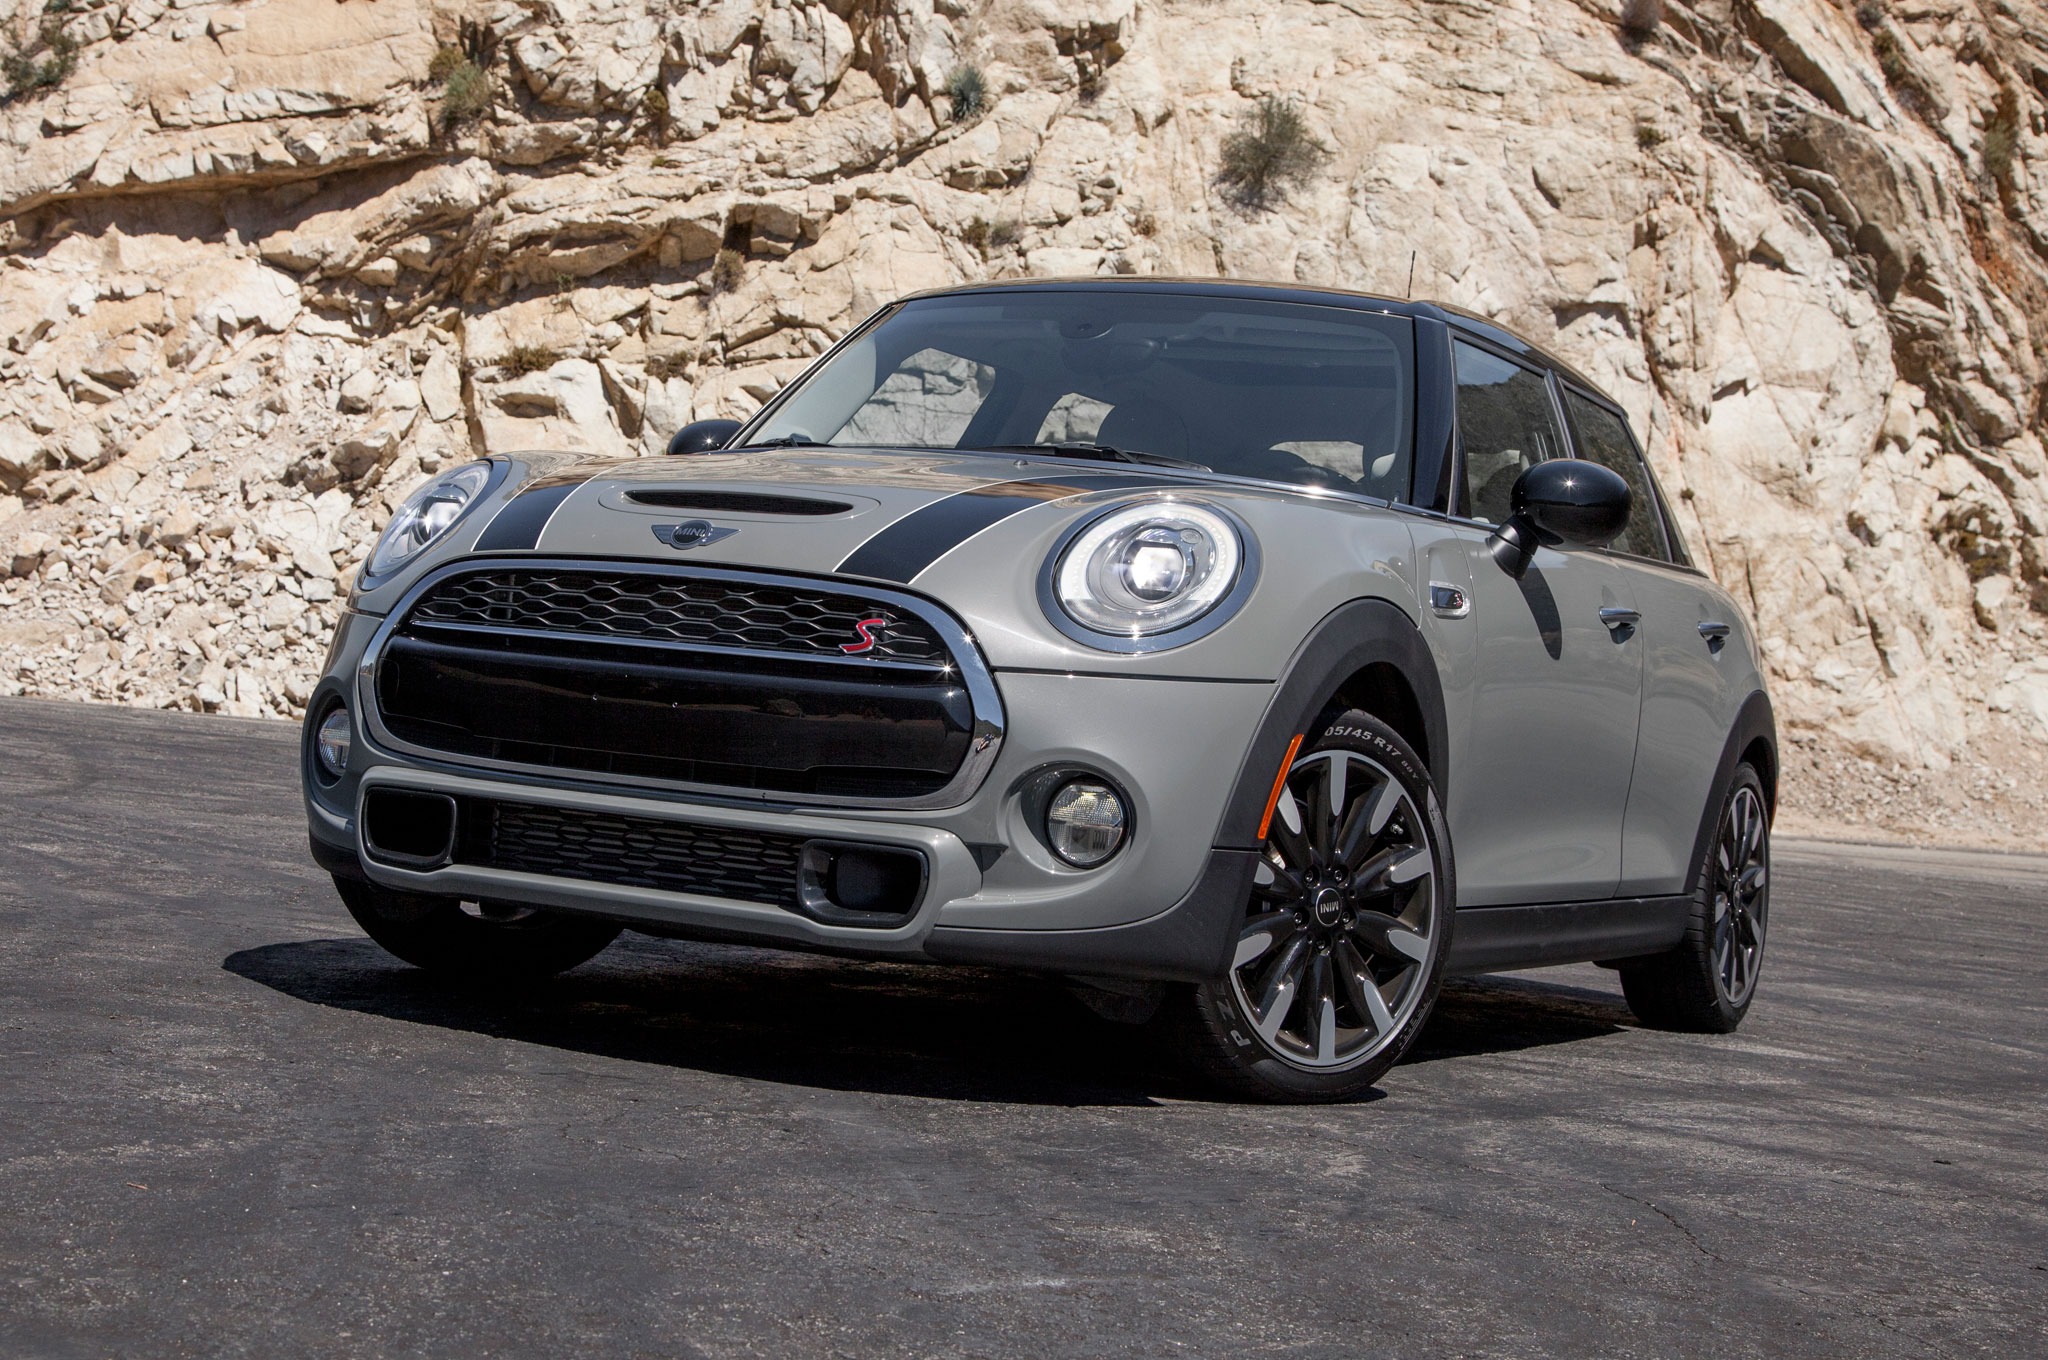 2016 Mini Cooper Hardtop 4 Door Horsepower Mini Cooper Cars